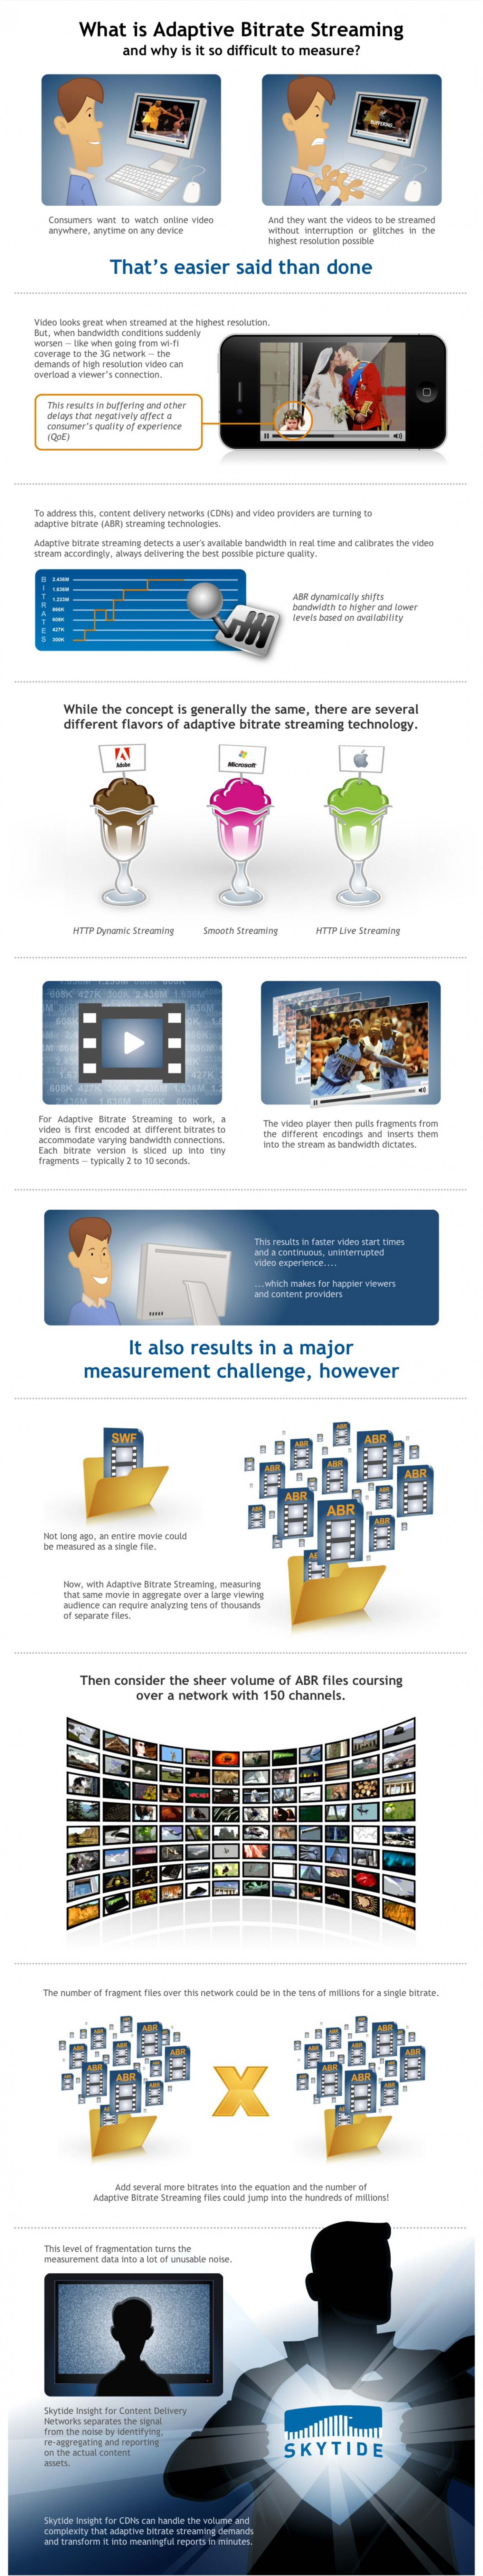 What is Adaptive Bitrate Steaming? Infographic